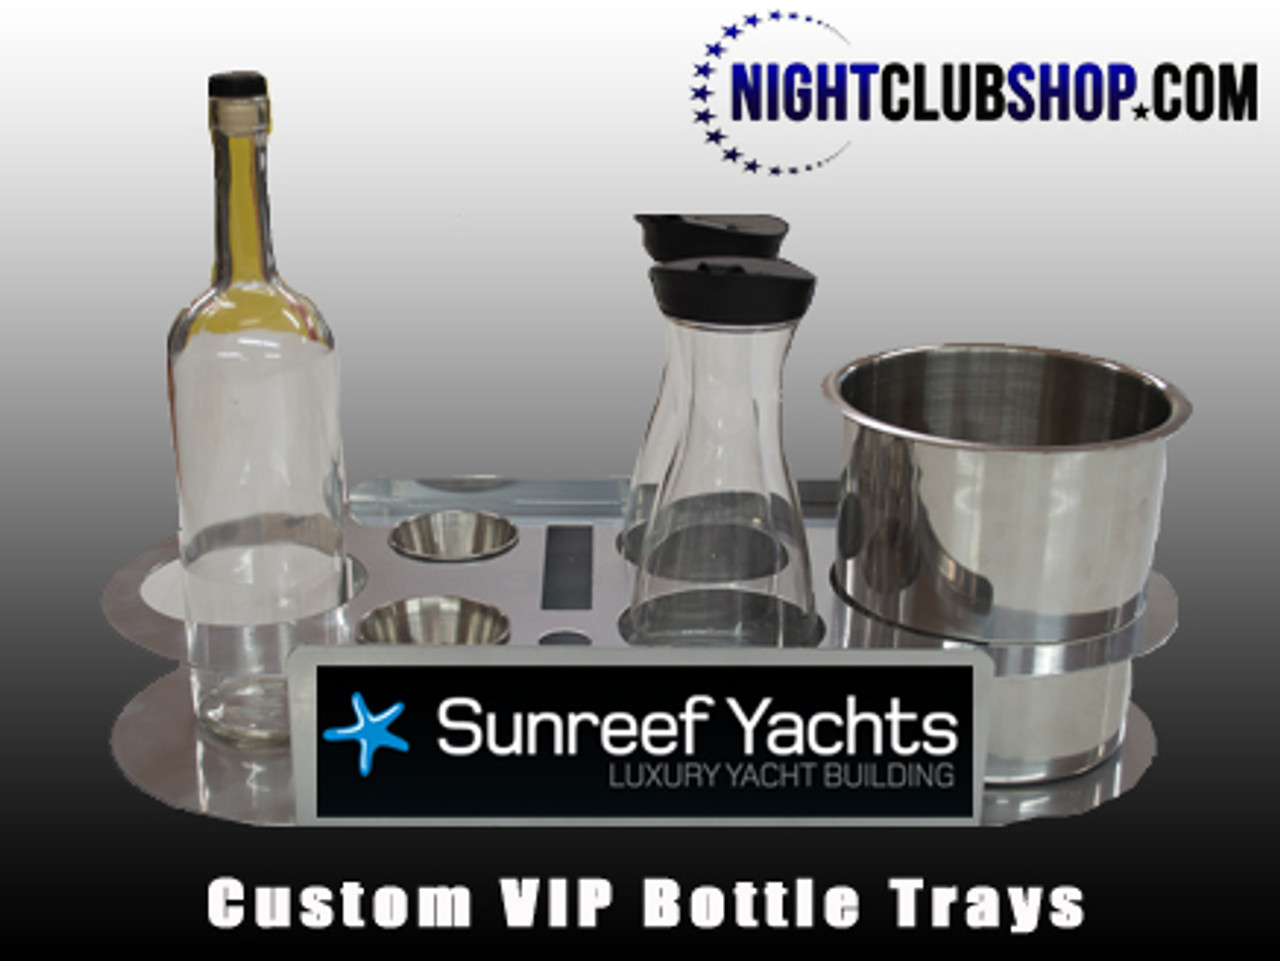 Customized, Logo, Tray, Champagne, Bottle, Service, serving tray